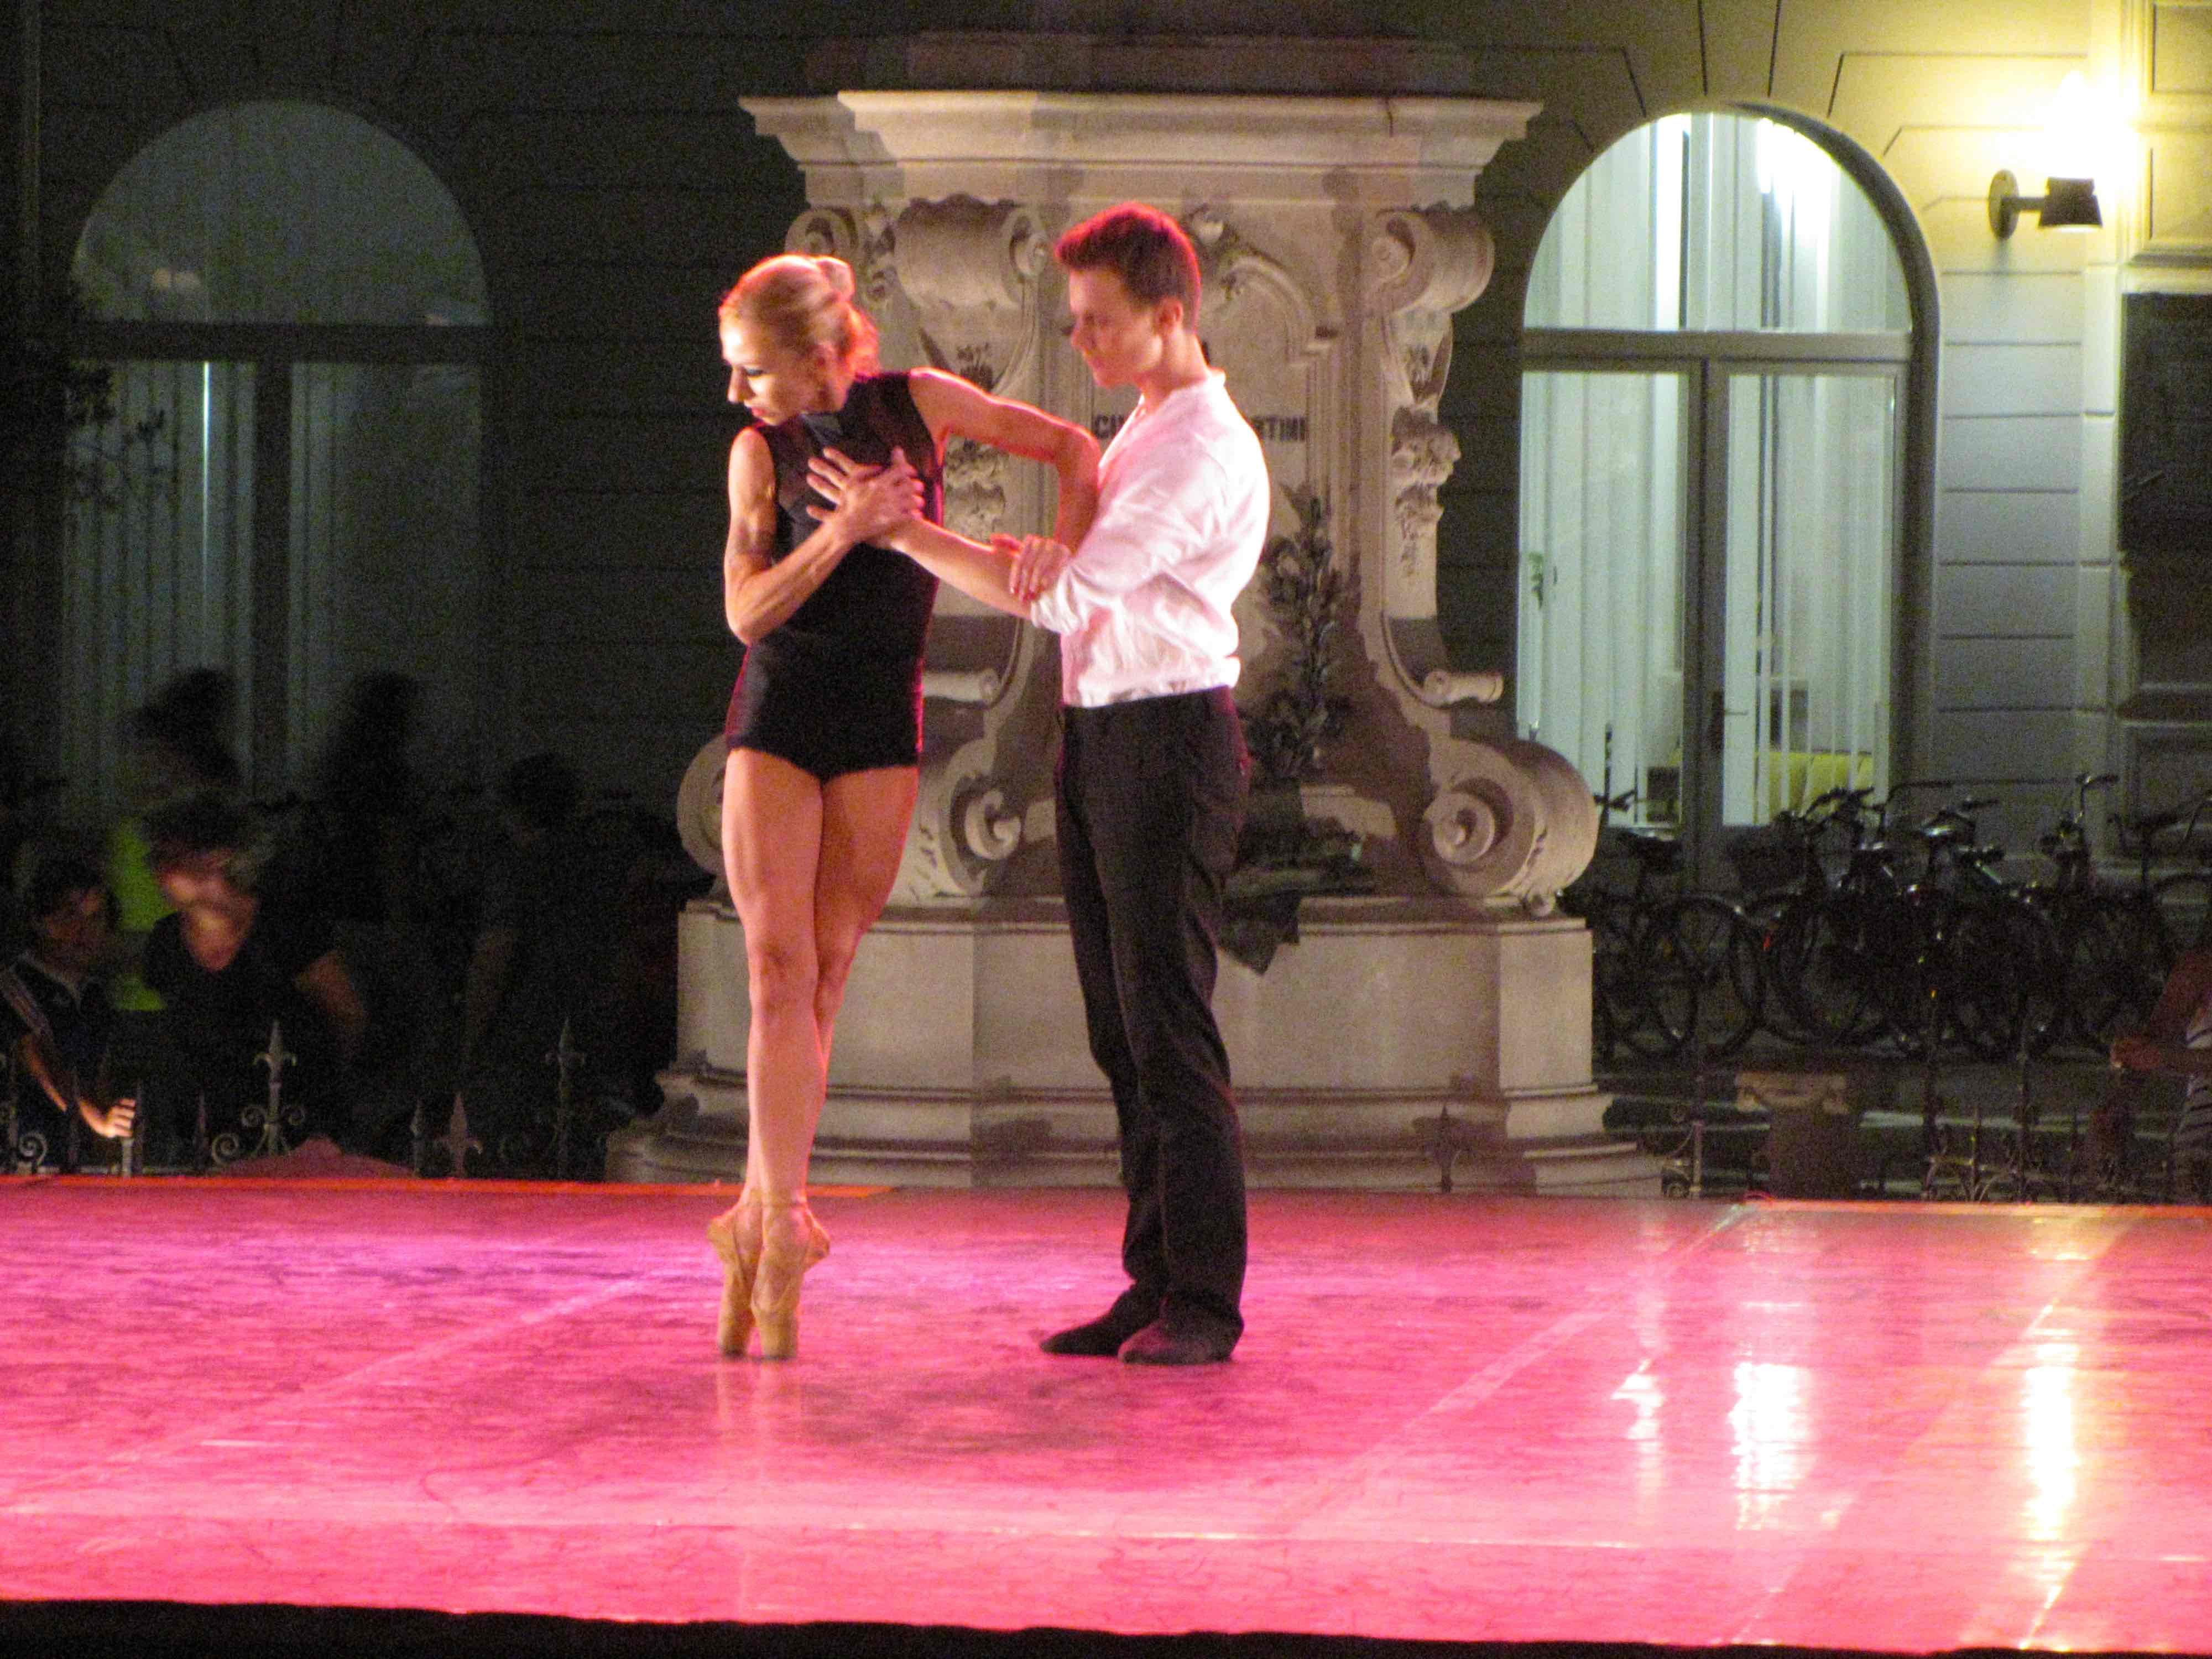 IMG_4828_res (17)